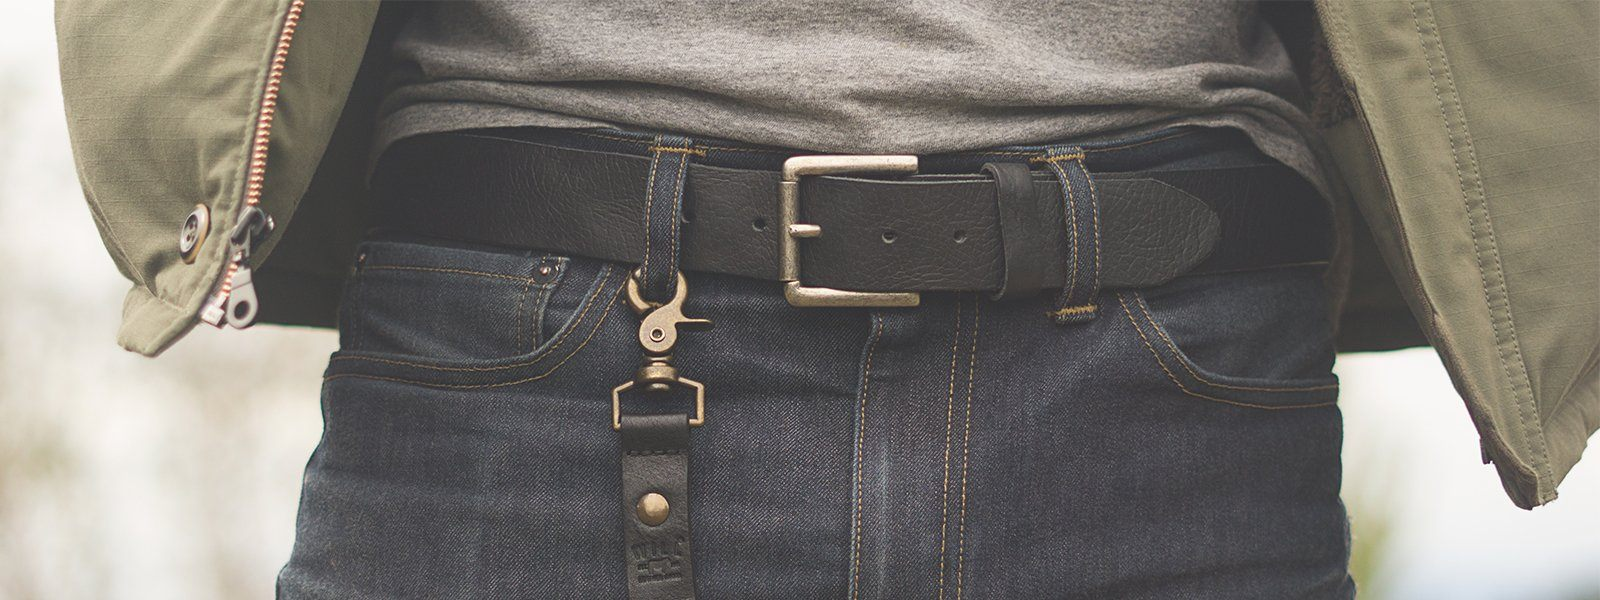 Men's Belts Page 2 - Will Leather Goods